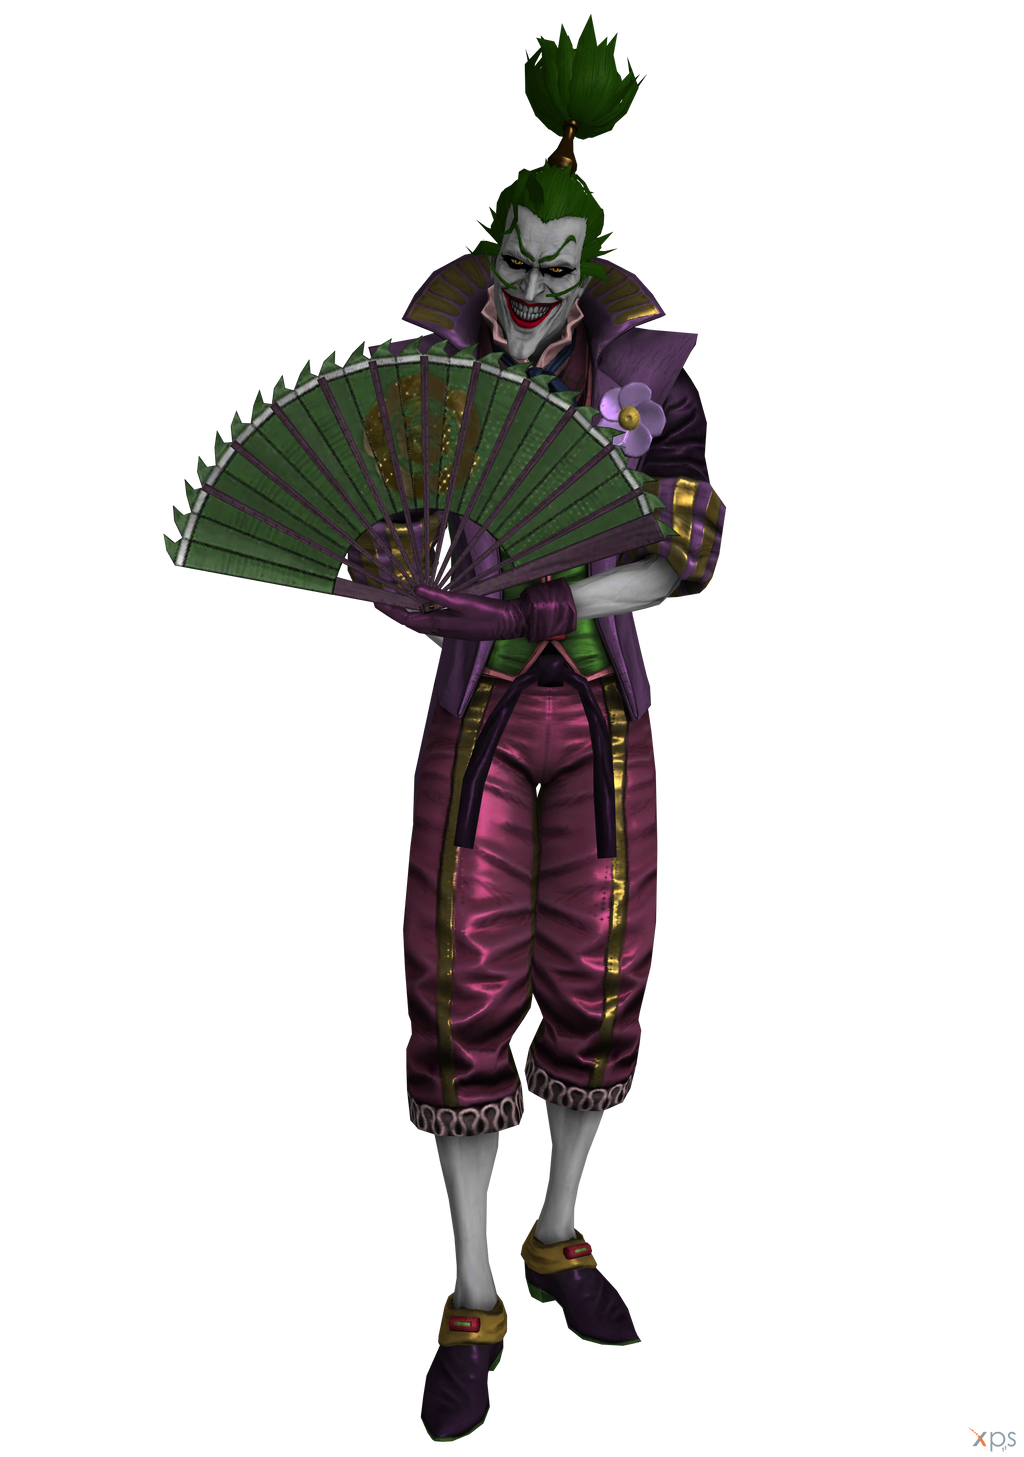 Injustice Mobile Batman Ninja Lord Joker By Kabalstein On Deviantart